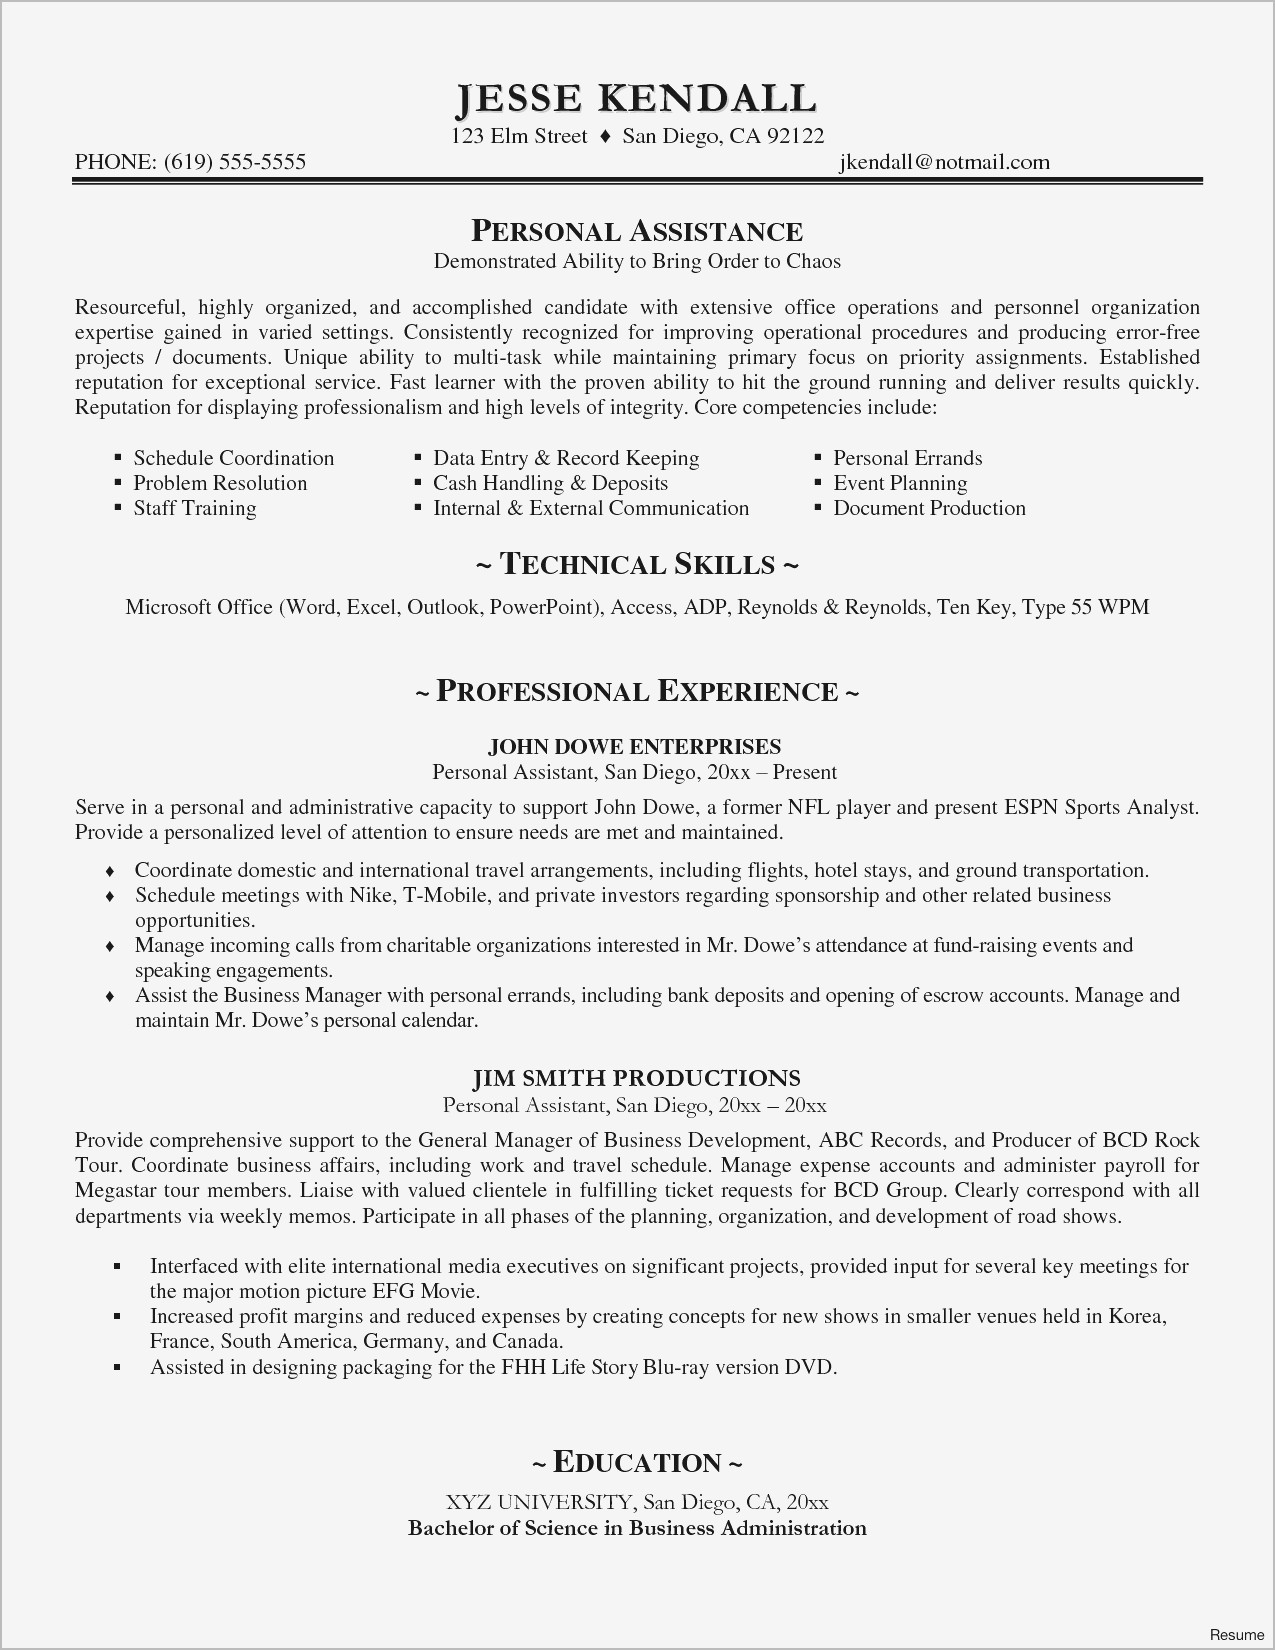 Personal Training Resume Template - Personal Trainer Resume New Best Perfect Nursing Resume Awesome